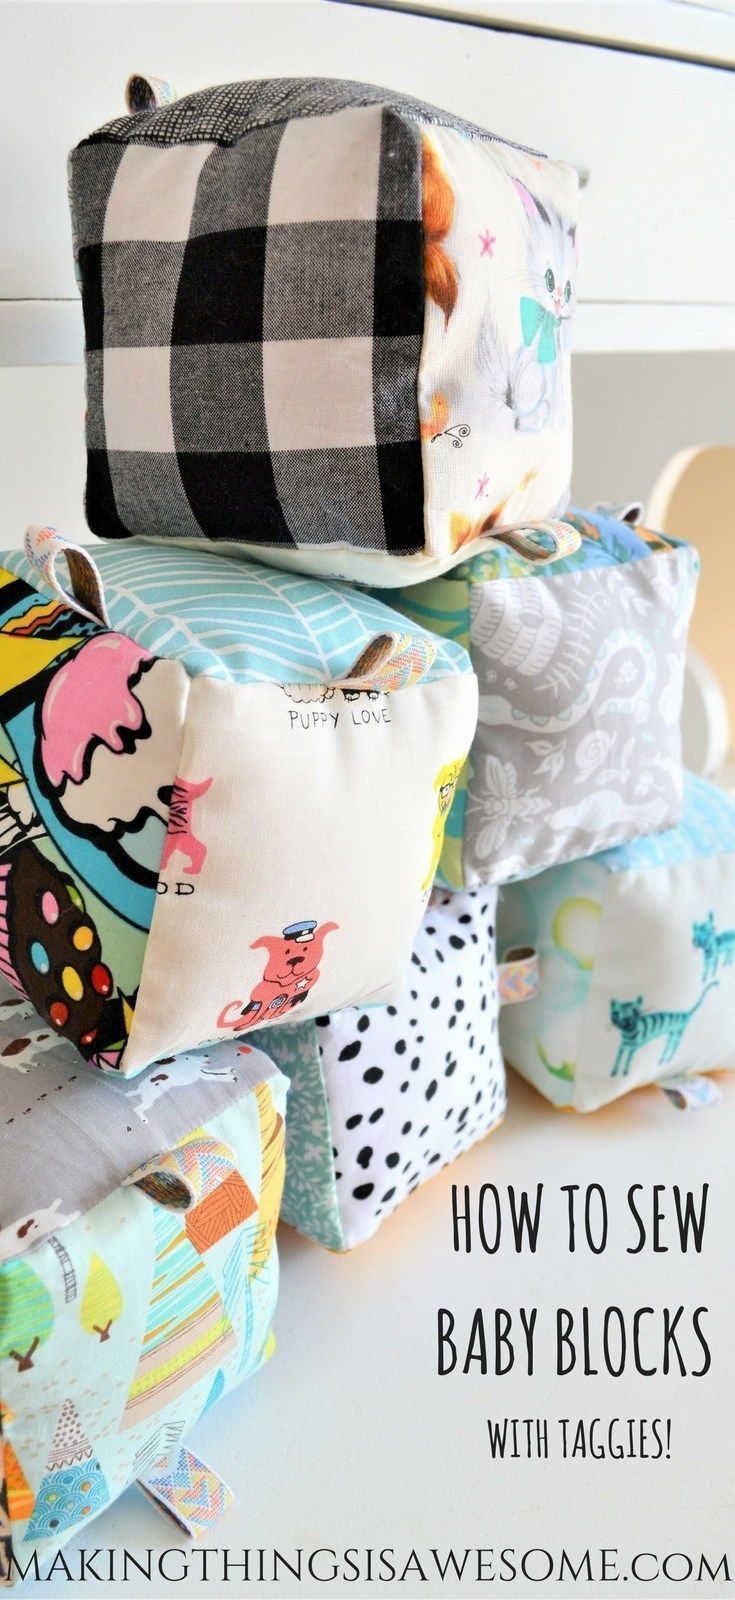 How to Sew Baby Blocks With Taggies! - Tutorial! -